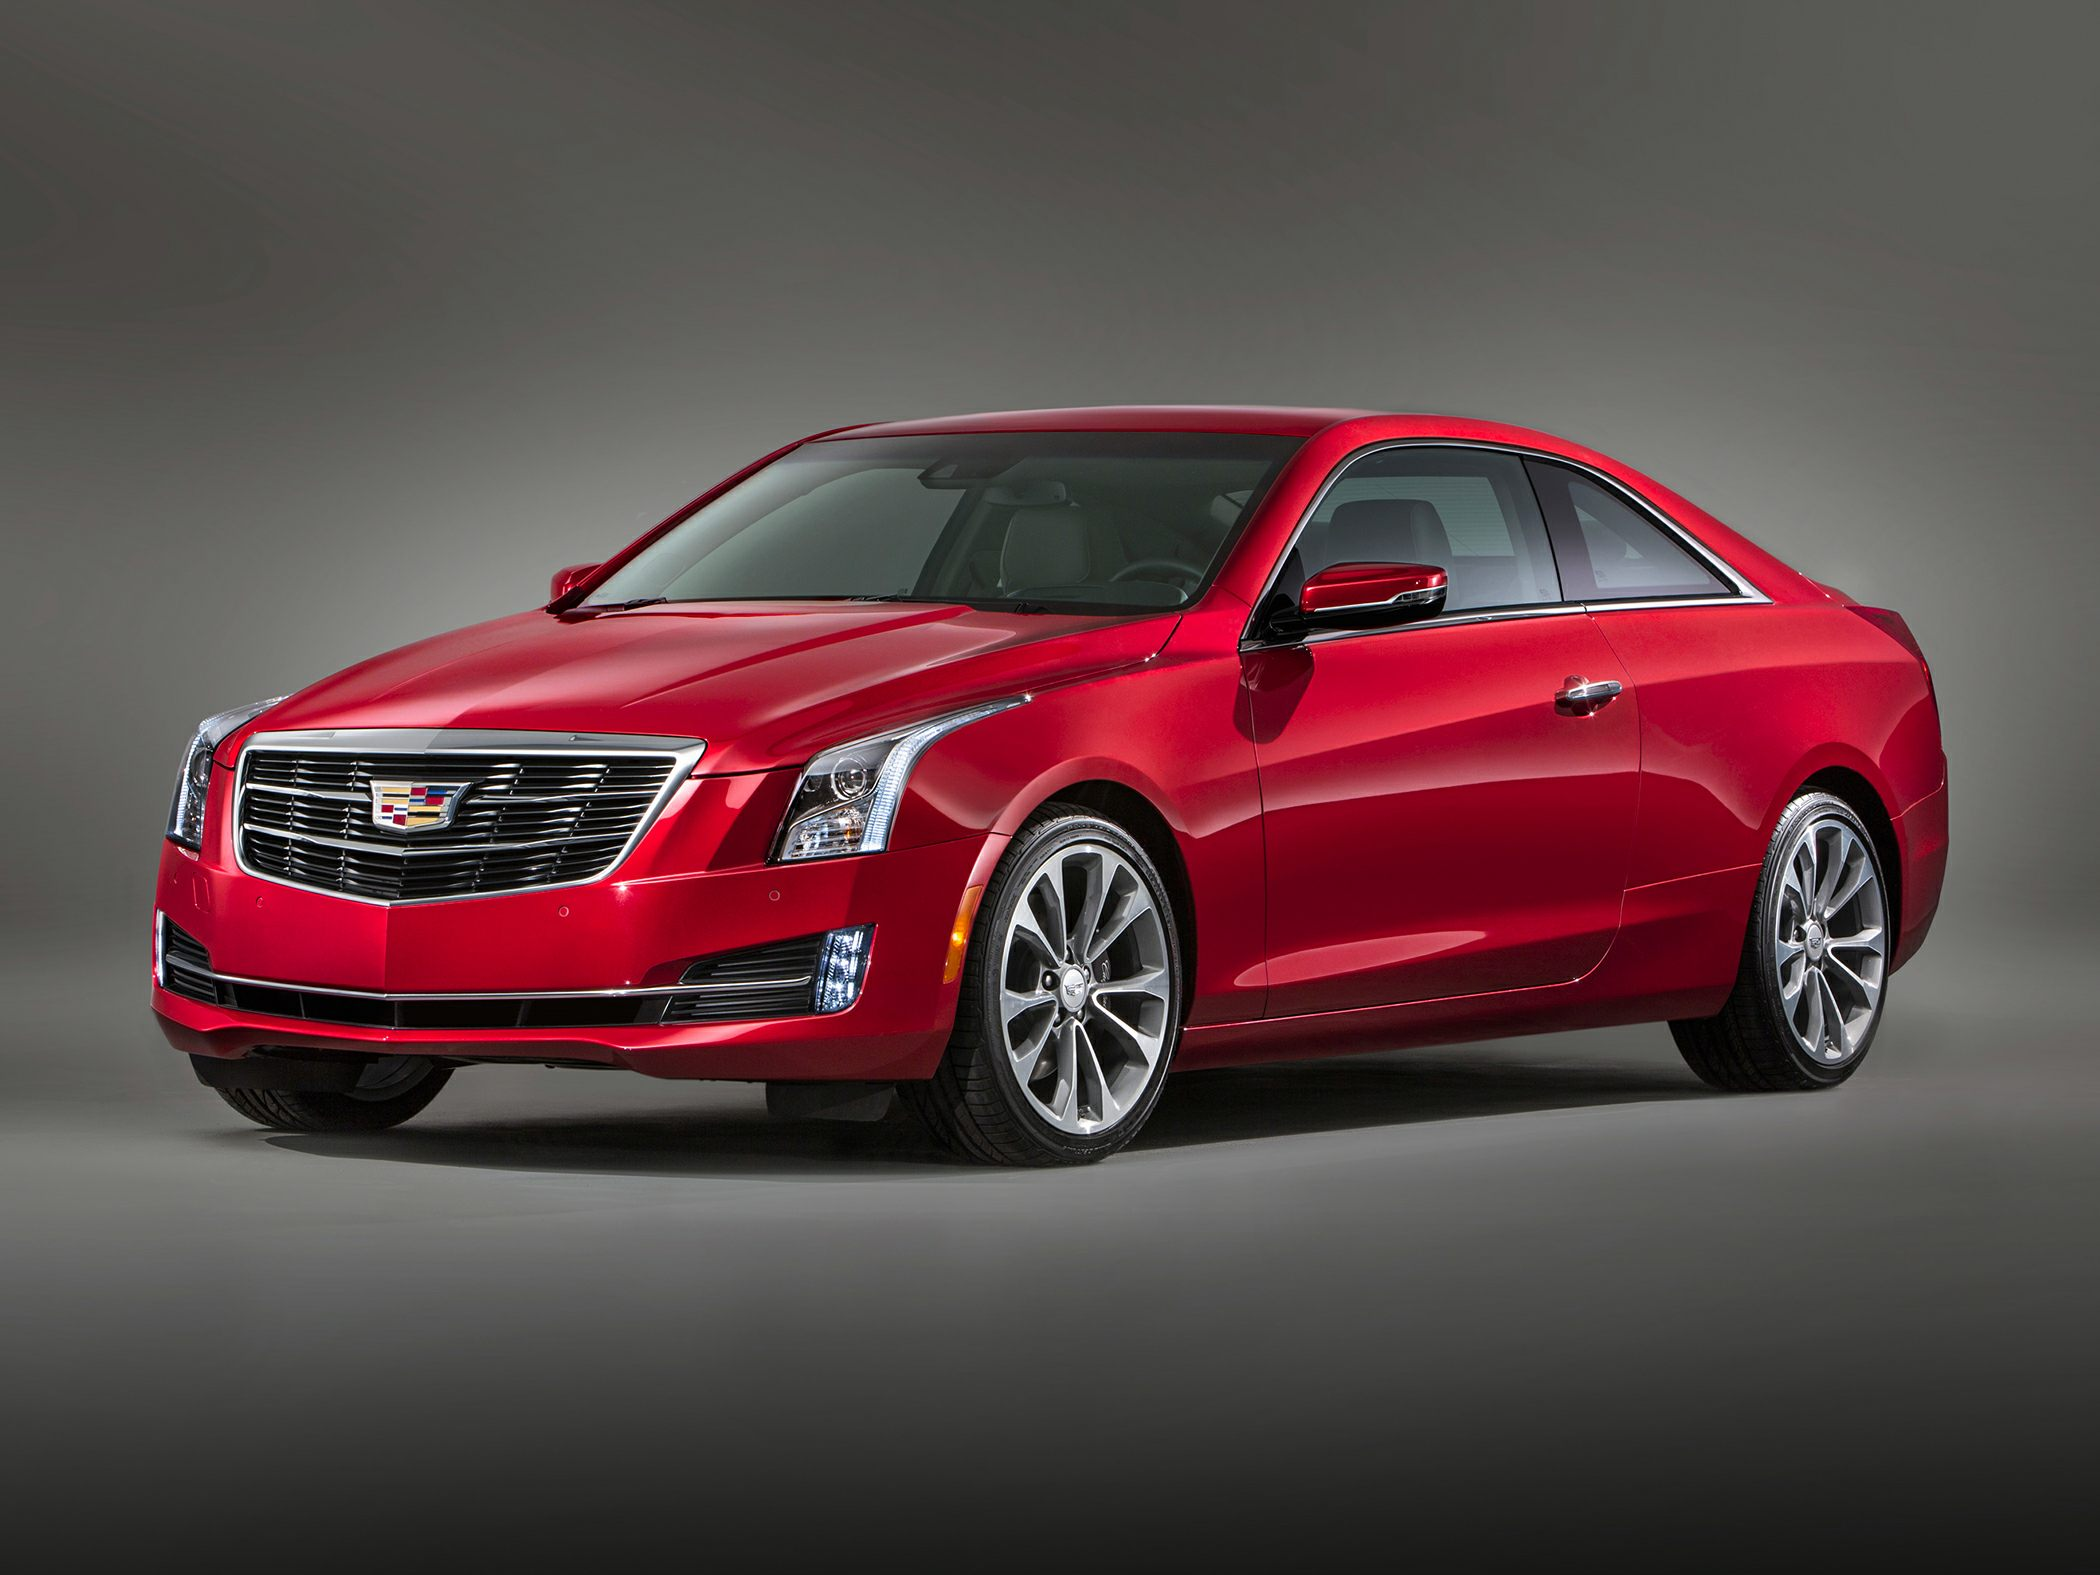 Cadillac prices new ATS-V from $61,460*